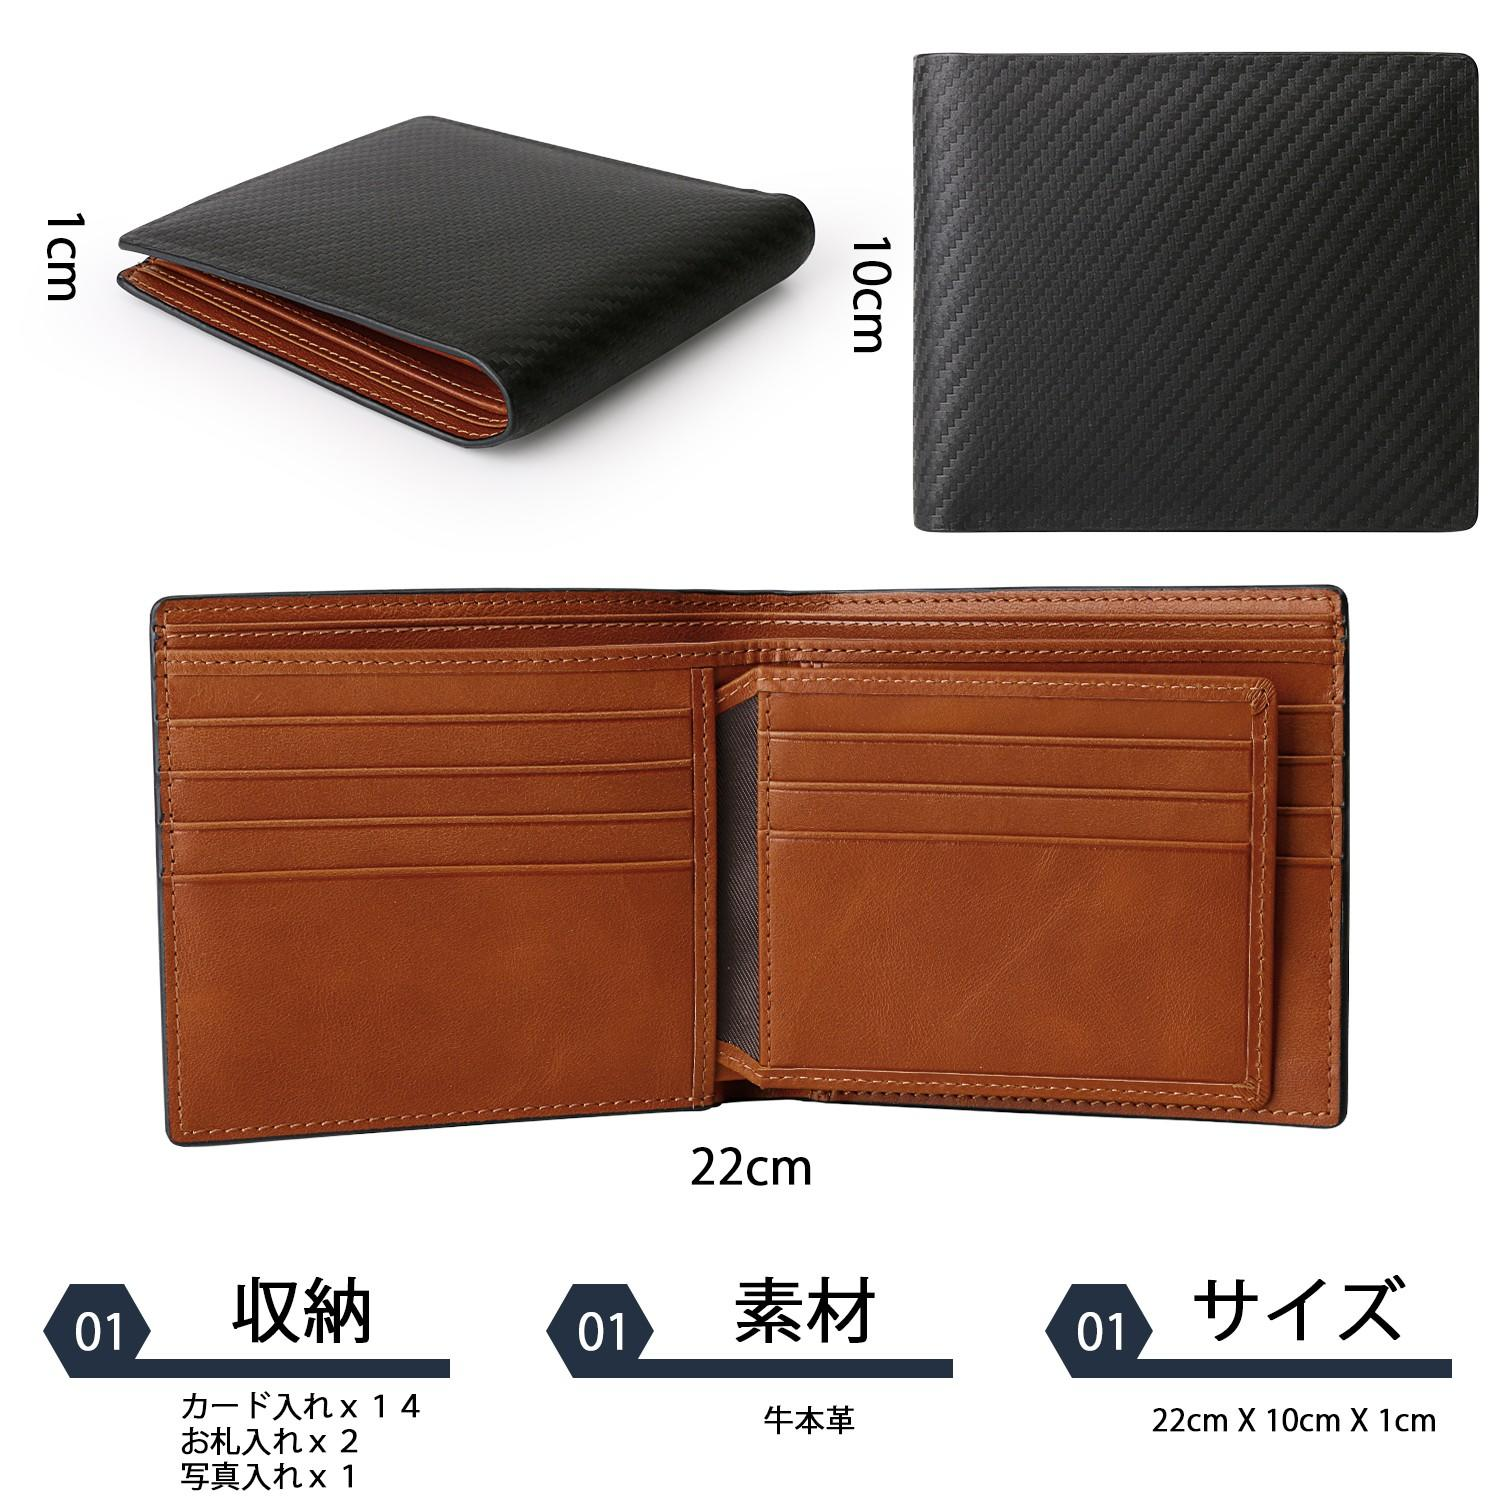 AIVI mens leather wallet with coin pocket online for iphone 8 / 8plus